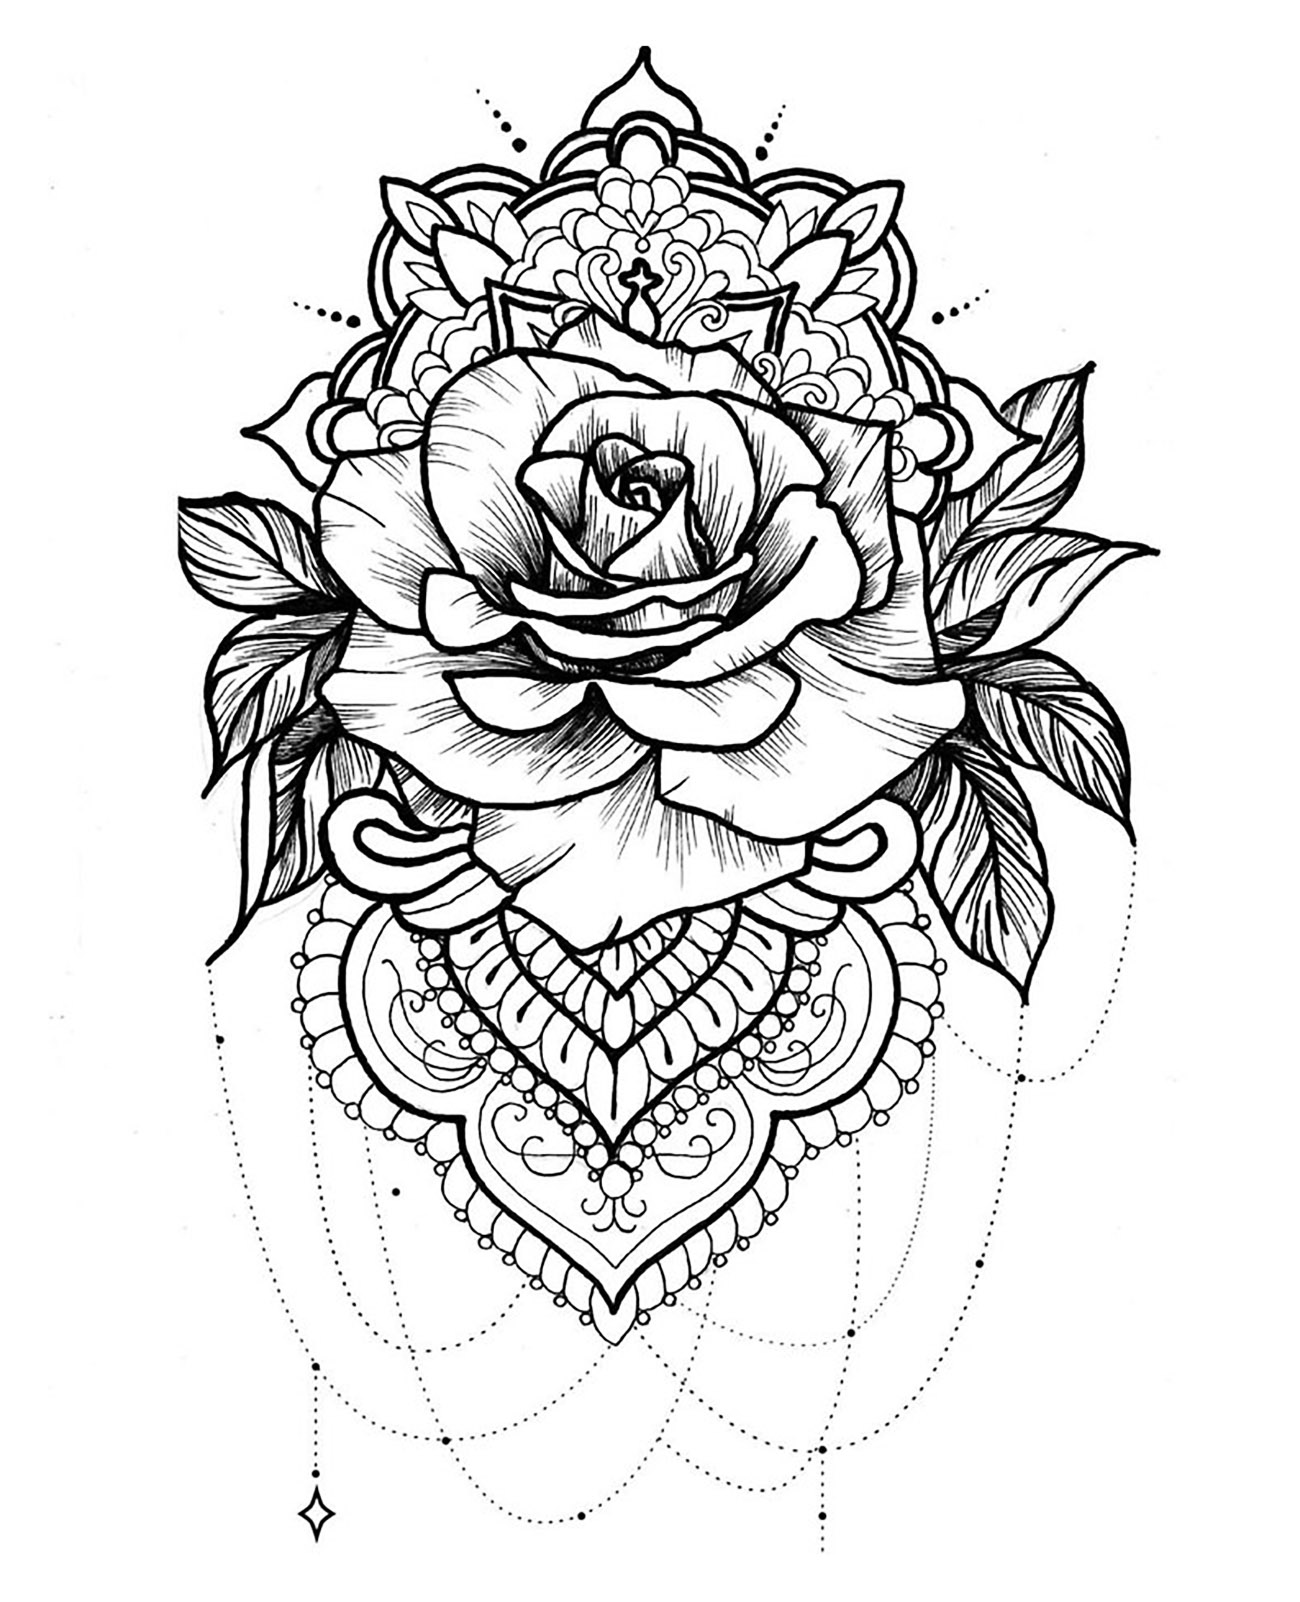 Mandala a telecharger et colorier rose mandalas coloriages difficiles pour adultes - Mandala colorier ...